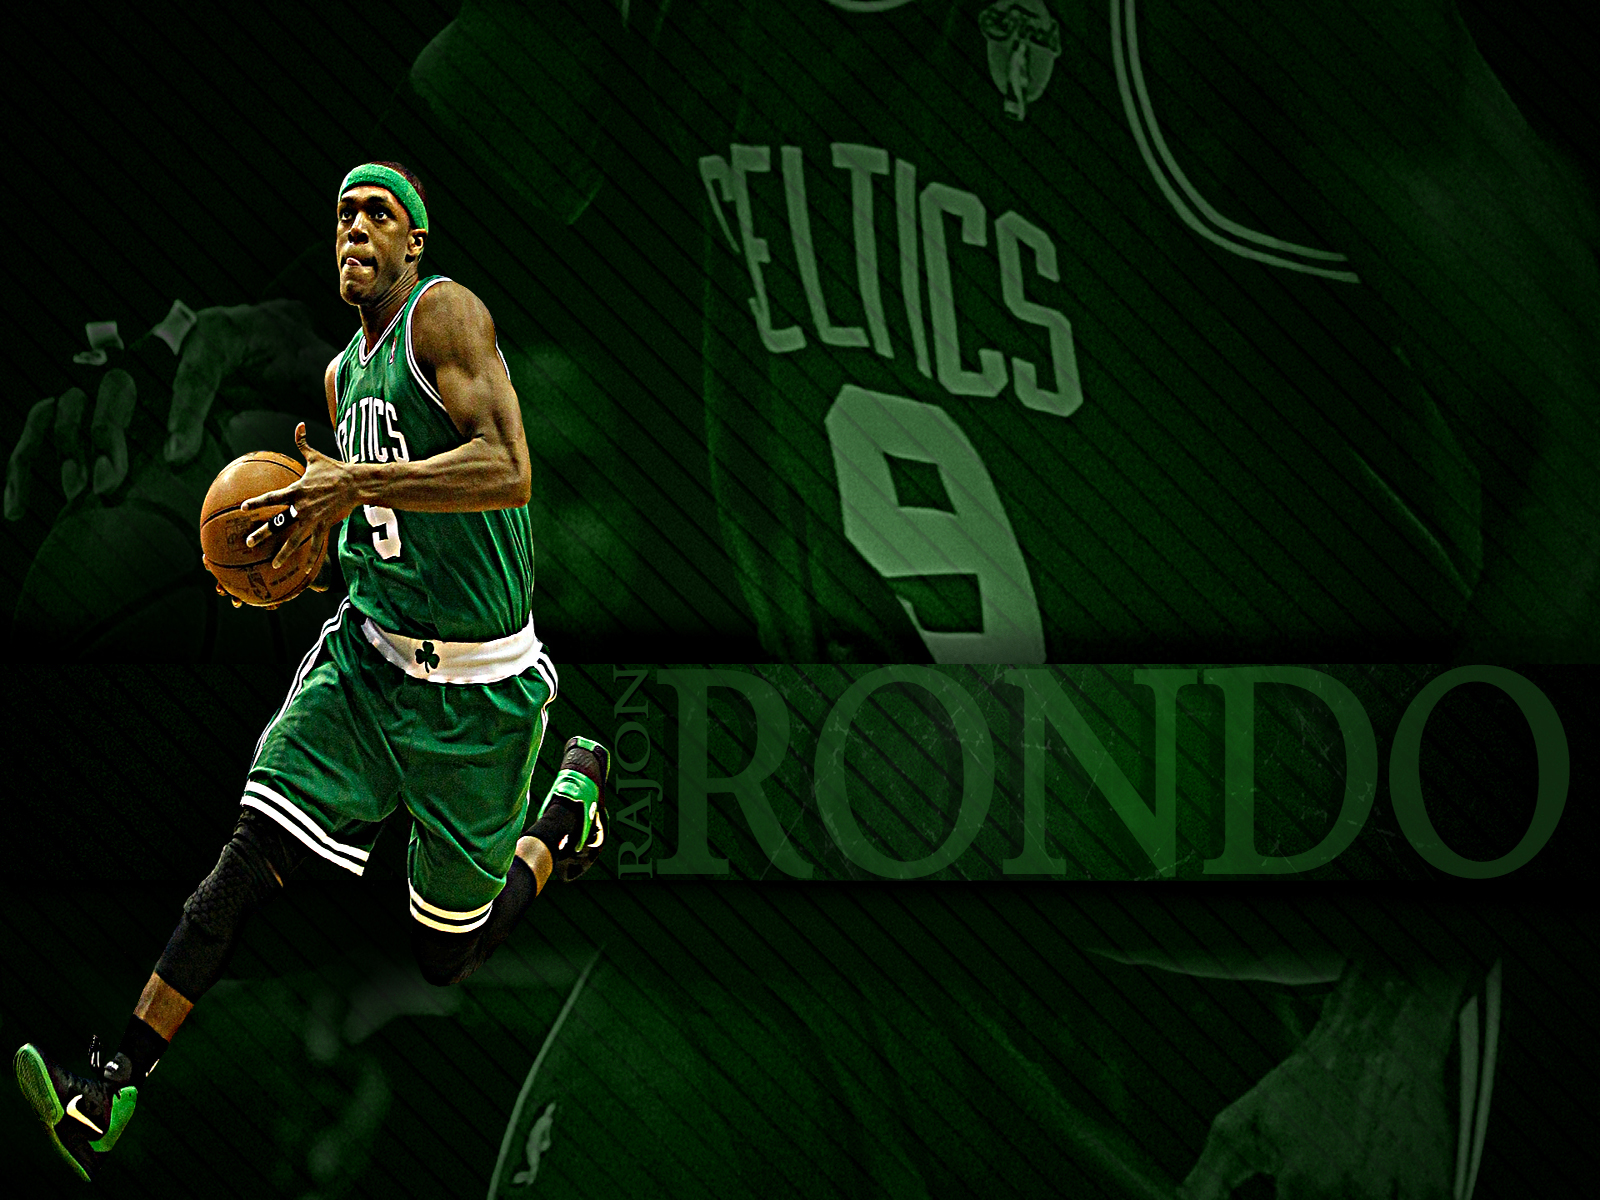 [48+] Boston Celtics Wallpapers For Desktop On WallpaperSafari